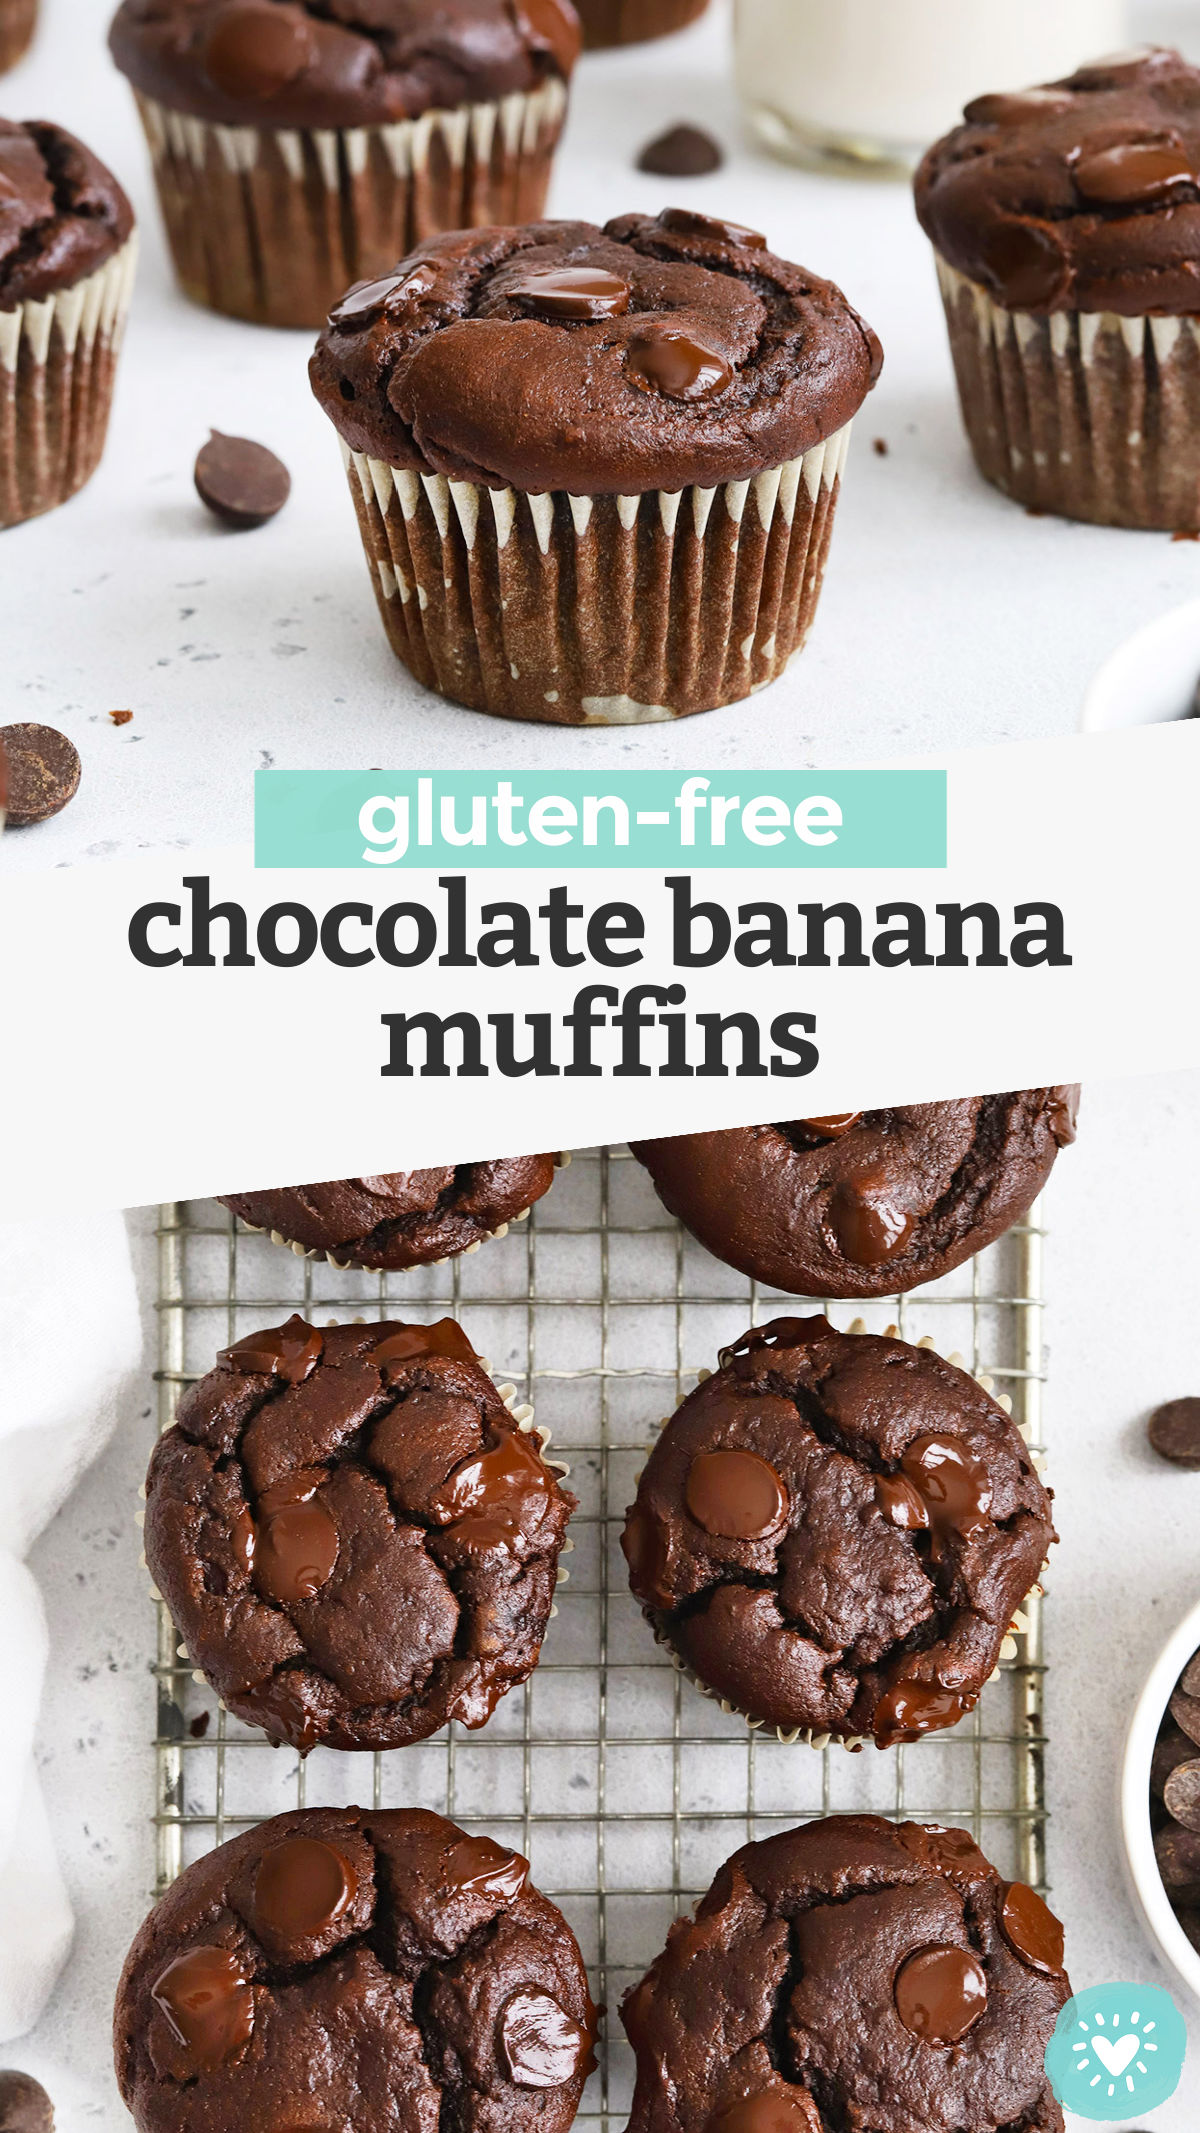 Gluten-Free Chocolate Banana Muffins - These gluten-free double chocolate banana muffins are light, fluffy, and loaded with ultra-chocolatey flavor. A favorite sweet treat that's easy to make any time! (Dairy-Free) // gluten-free chocolate chocolate chip muffins // gluten free banana muffins recipe #glutenfree #muffins #breakfast #snack #chocolate #banana